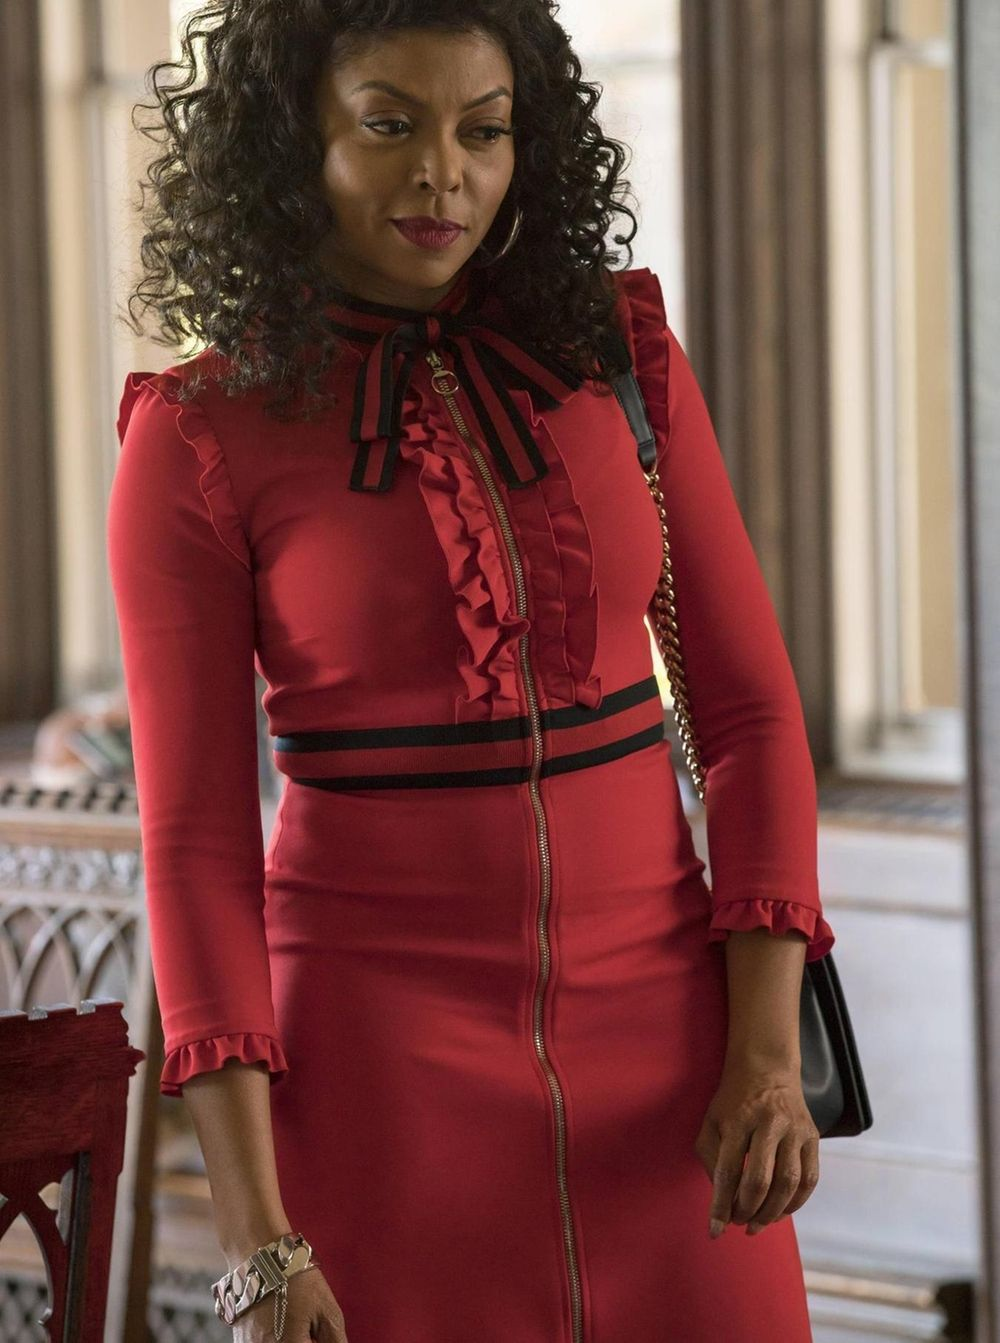 Gucci Viscose Jersey Dress as seen on Cookie Lyon in